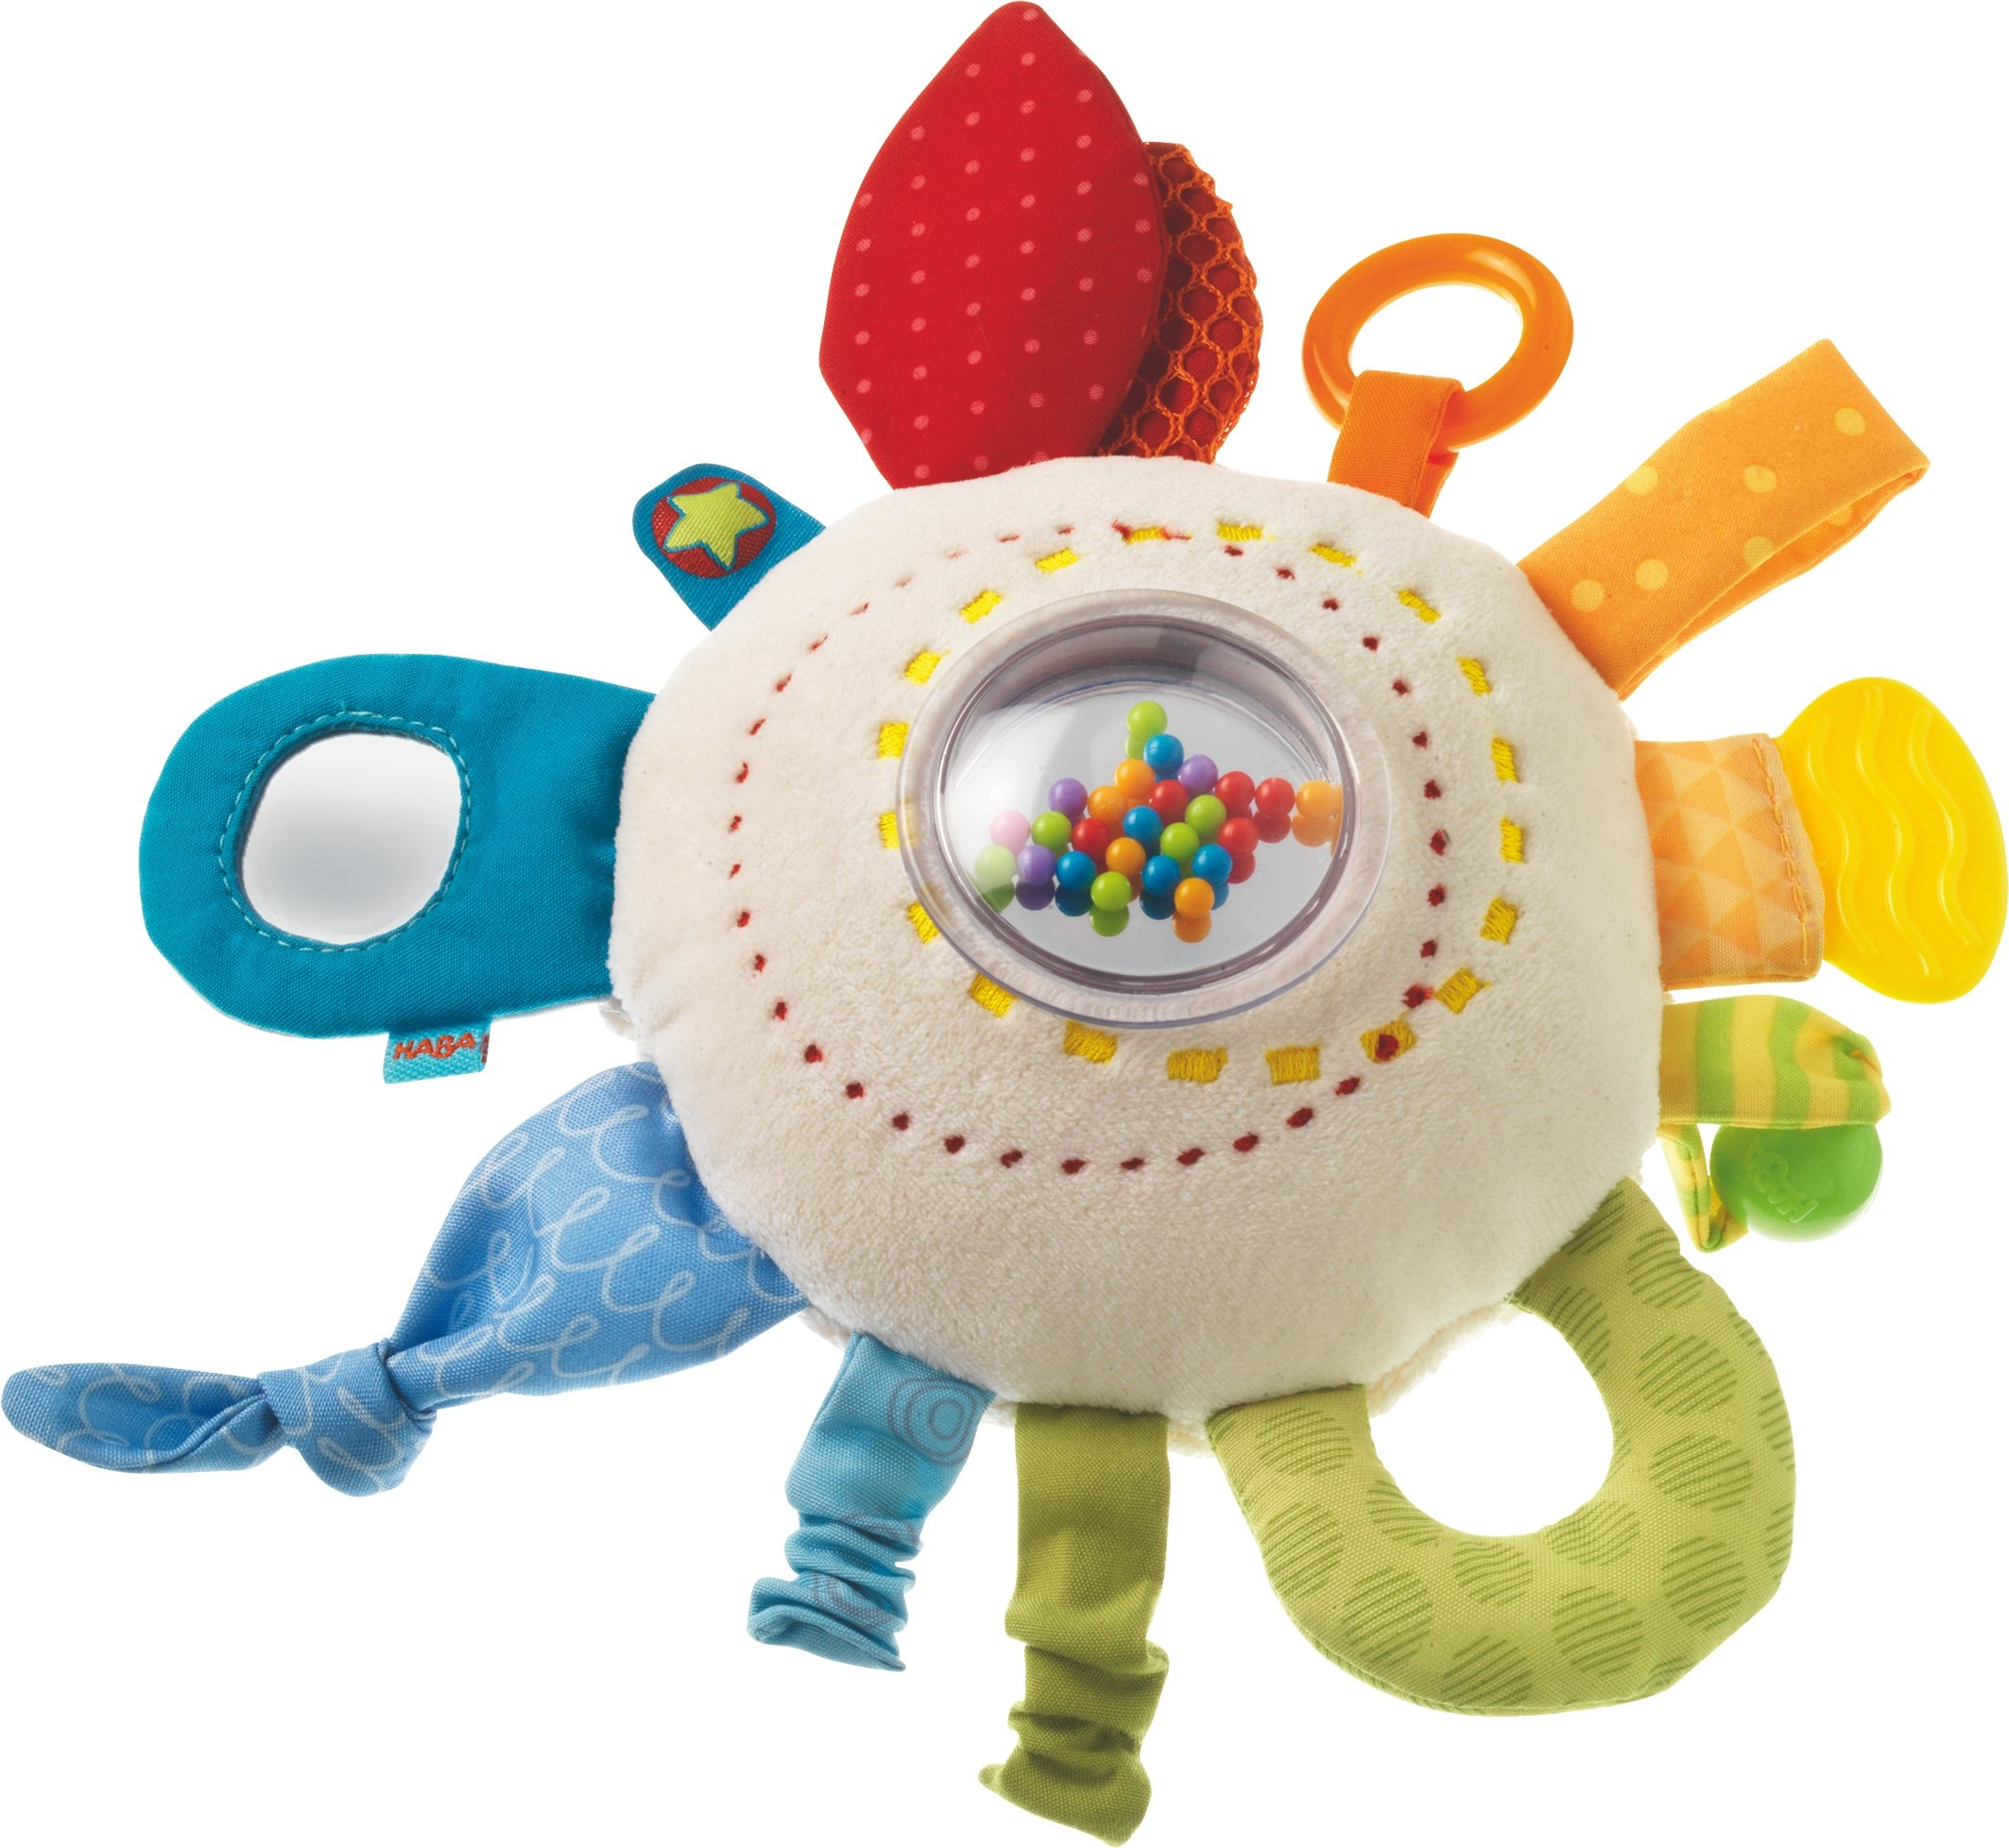 Amazon HABA Toot Toot Clutching Toy Made in Germany Baby